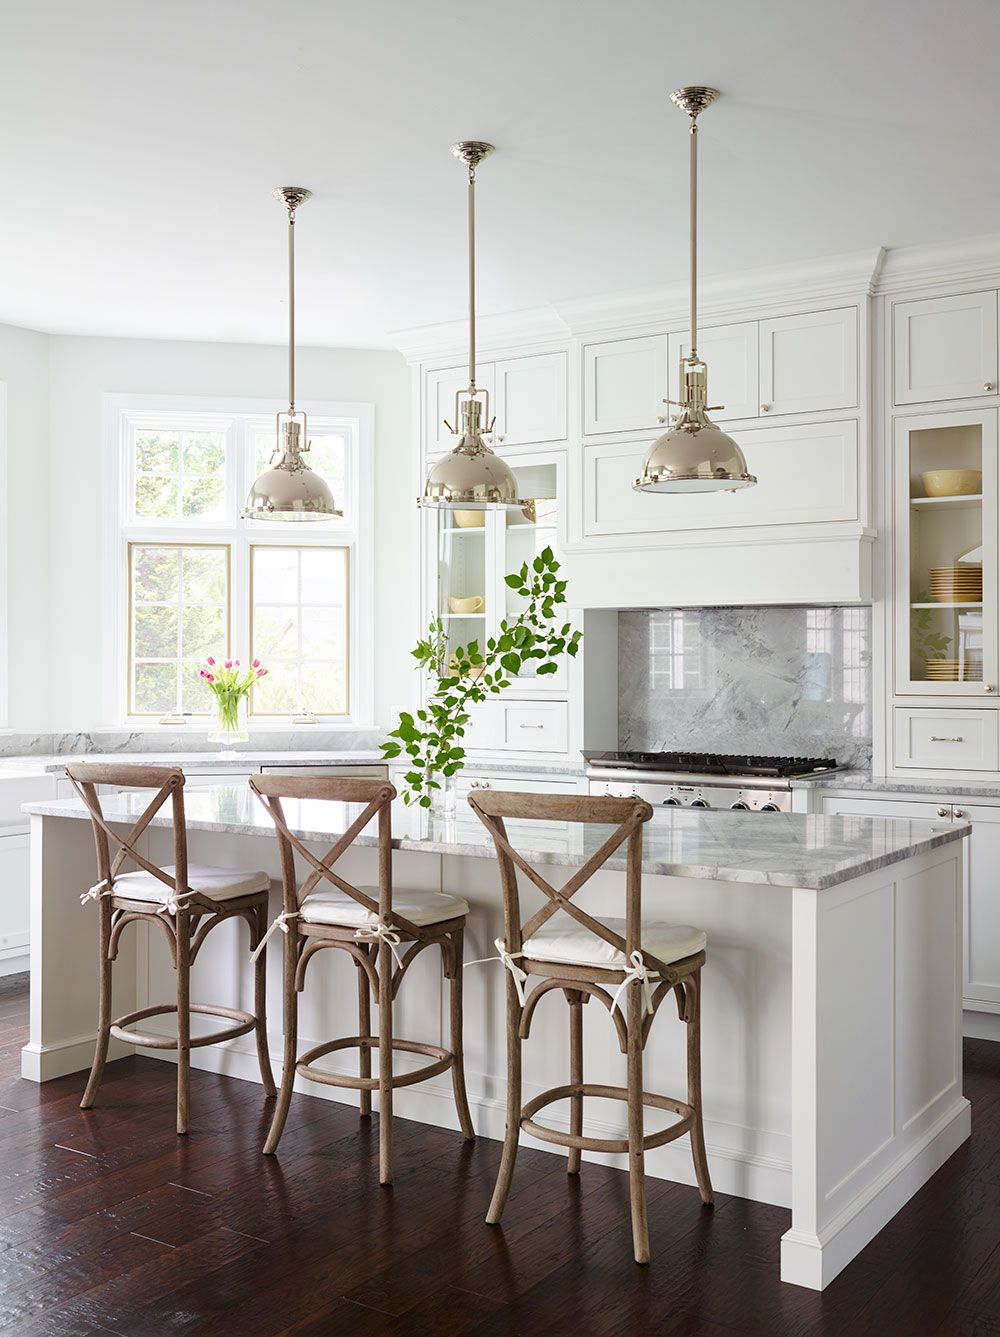 White custom kitchen cabinets - Bright White Custom Kitchen Designed By Shophouse Floor To Ceiling Cabinets With Large Island